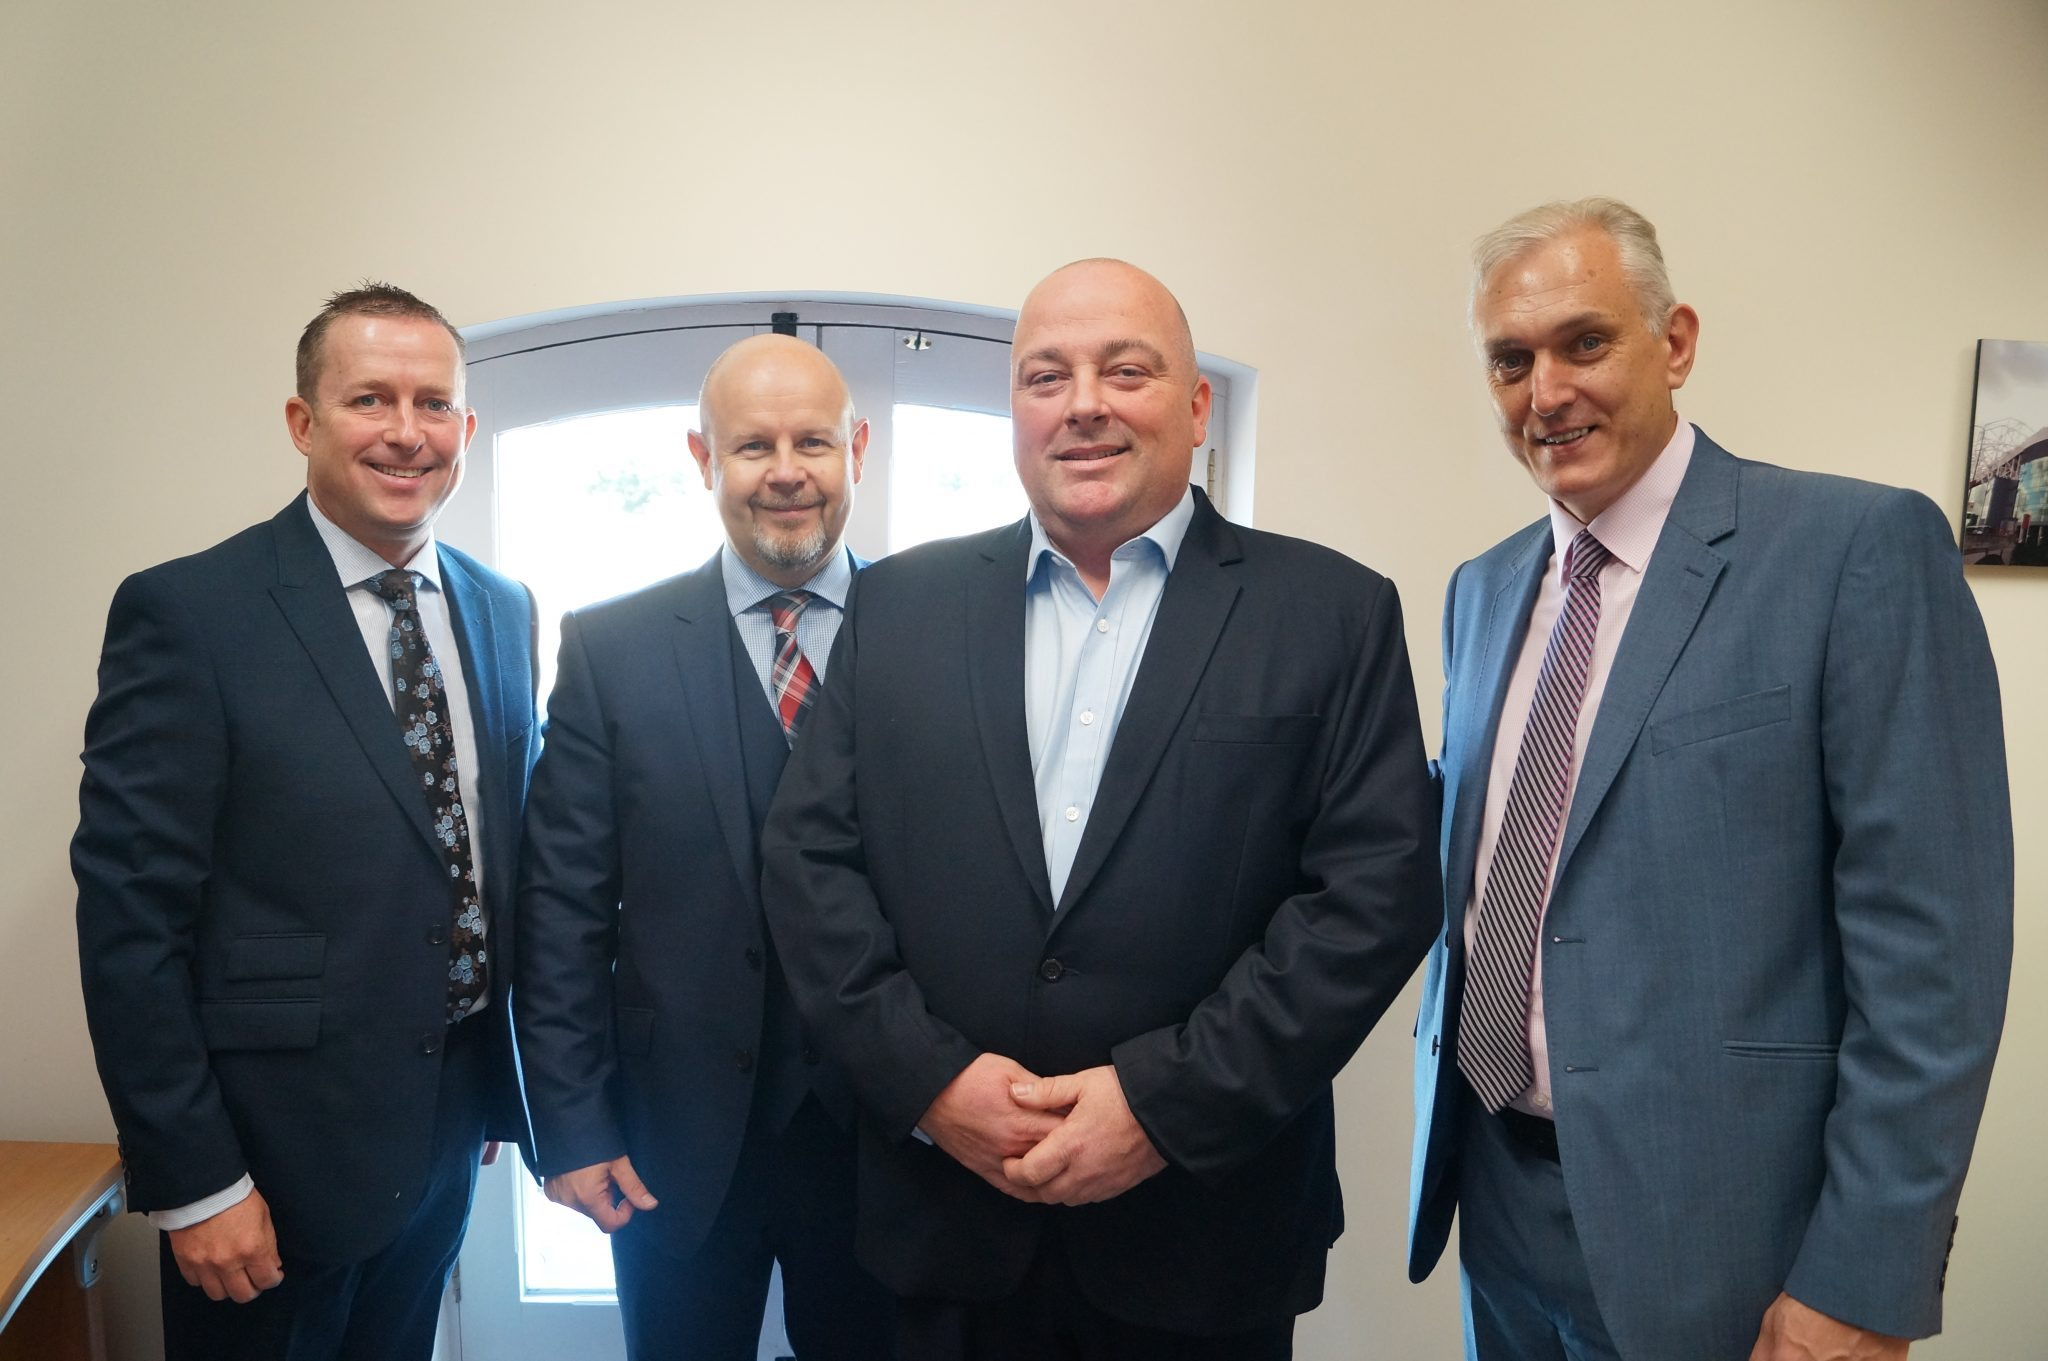 20 years at C&C for Project Director Mark Roxburgh